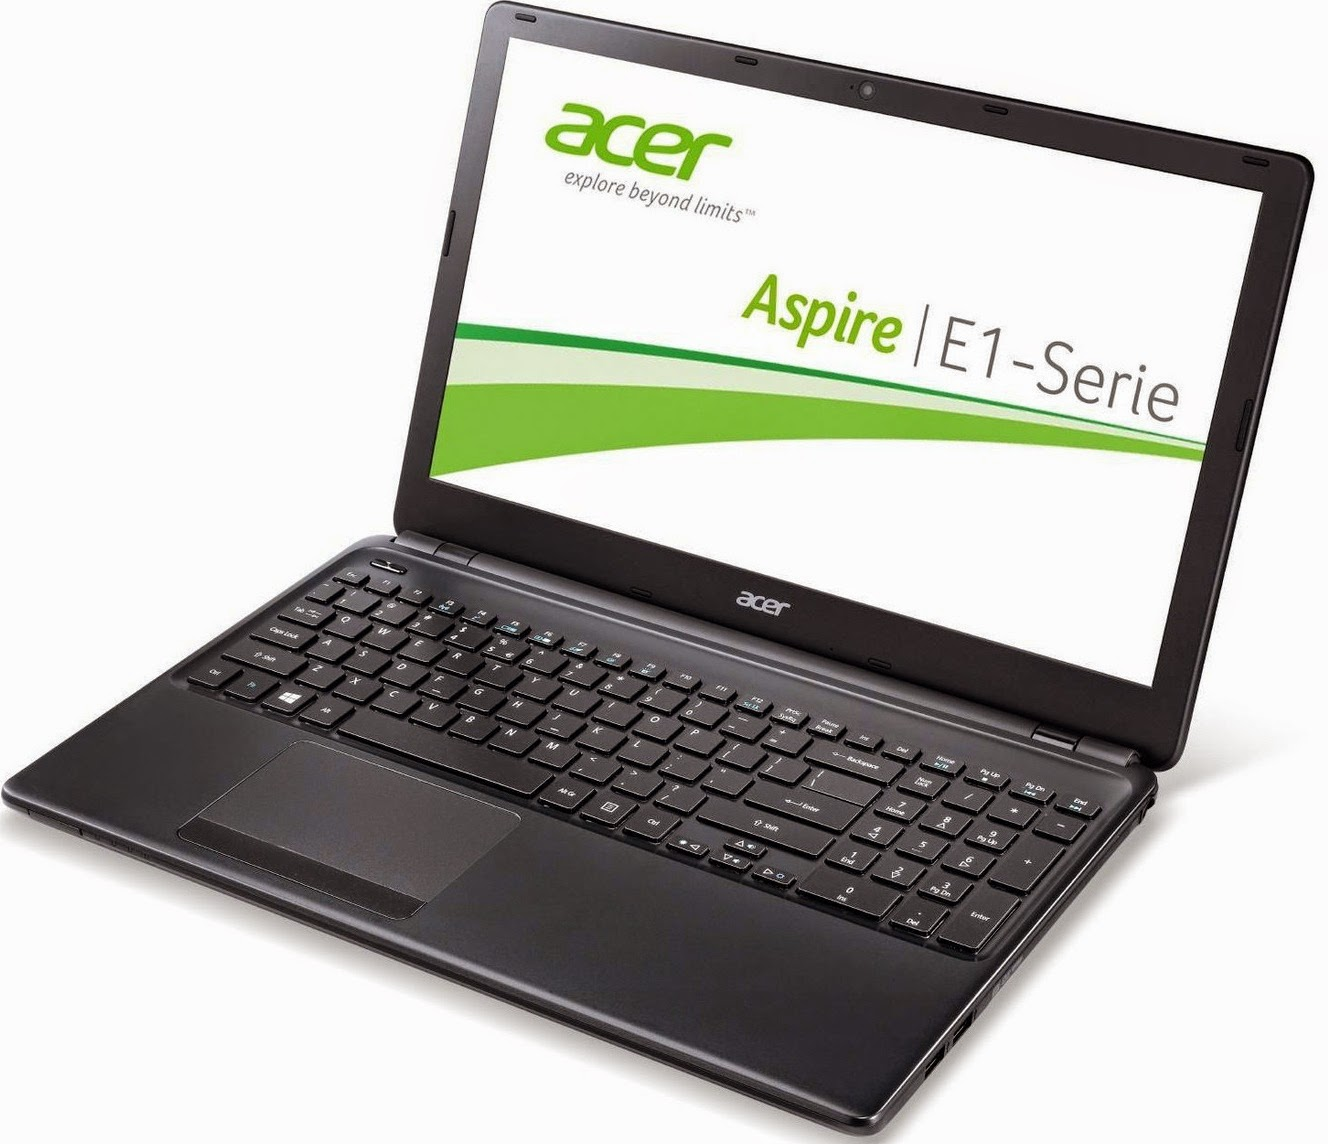 Acer Aspire E1-430 Drivers For Windows 8/8.1